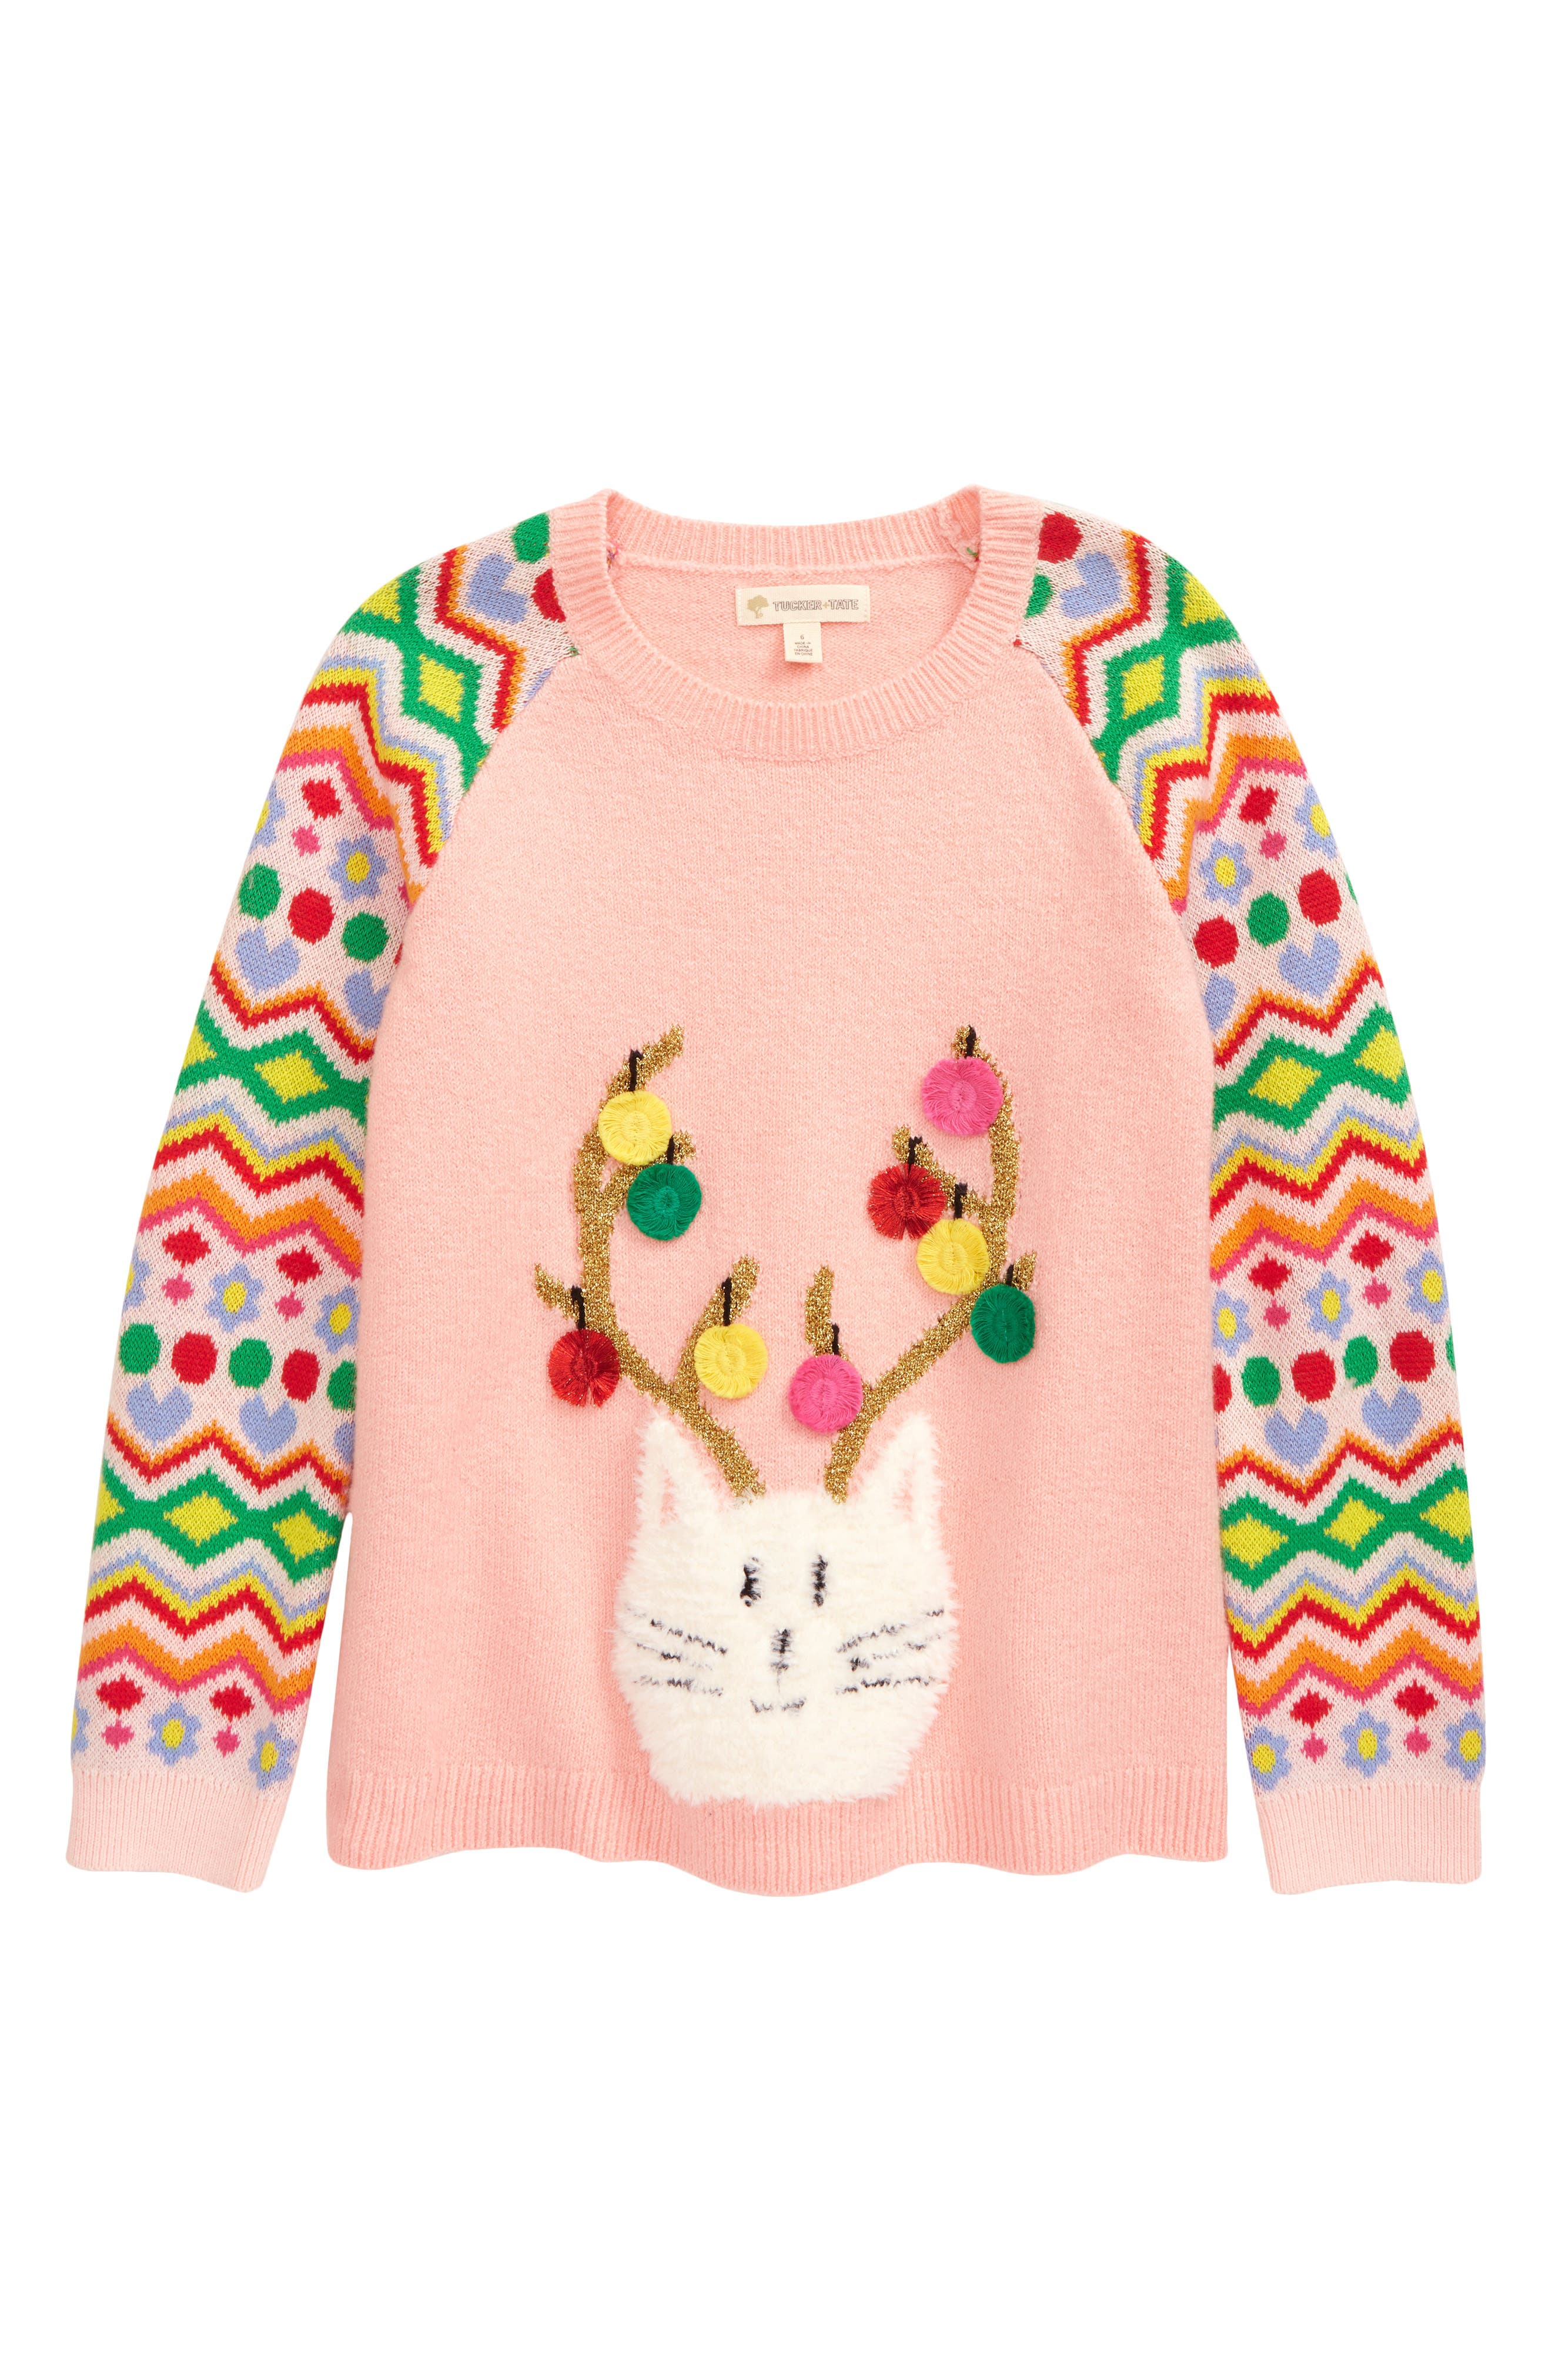 Style her in this adorable, festive sweater designed with colorful pattern-covered sleeves and a cute cat with ornament-decorated antlers. Style Name: Tucker + Tate Kids\\\' Icon Sweater (Toddler, Little Girl & Big Girl). Style Number: 6080682. Available in stores.